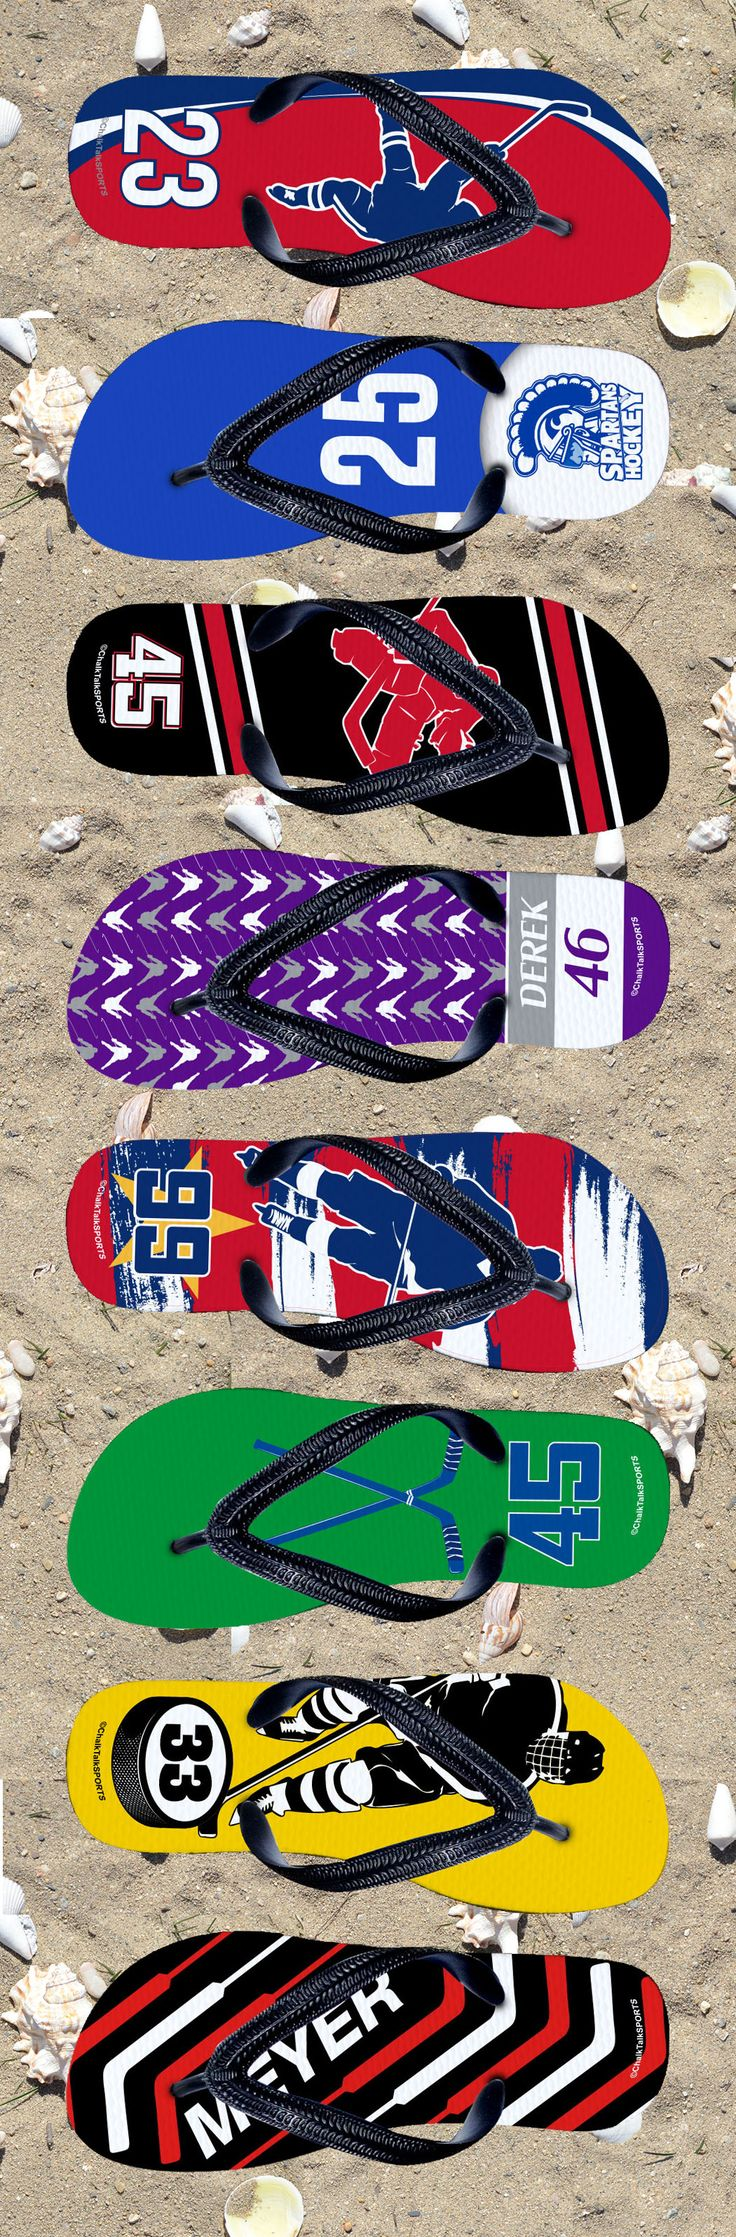 Our newest Hockey Flip Flop styles! They are completely customizable with many colors, designs, and personalization options. Makes a great hockey gift!